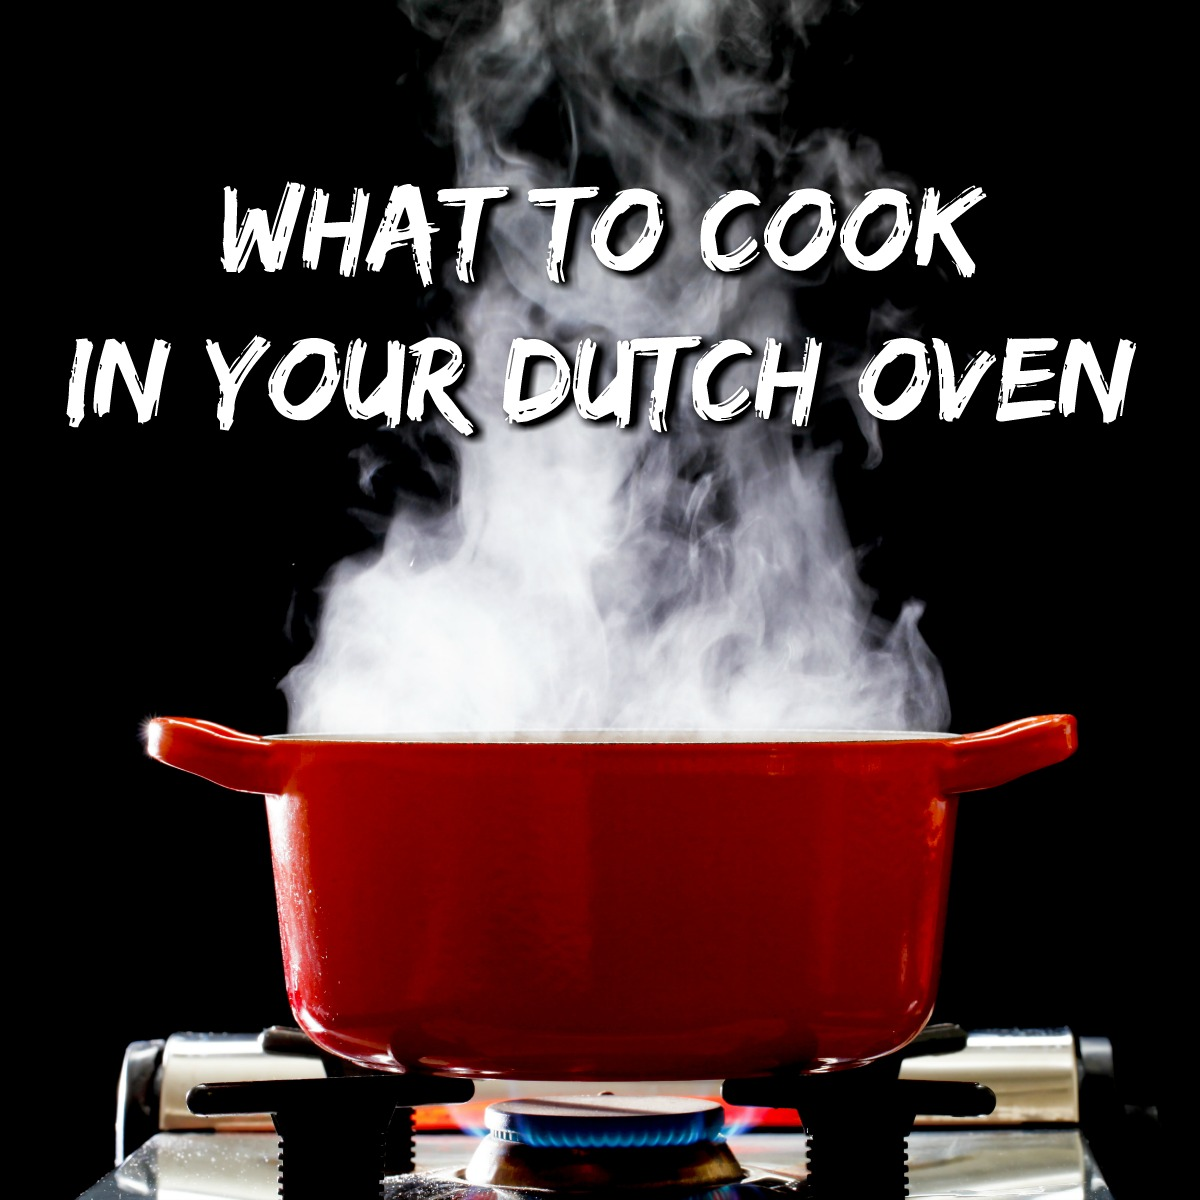 An enameled dutch oven is surely one of the most versatile pots in any kitchen. You can use these pots to prepare skillet dinners, cook pasta, braise roasts, and even bake bread! #lodge #dutchoven